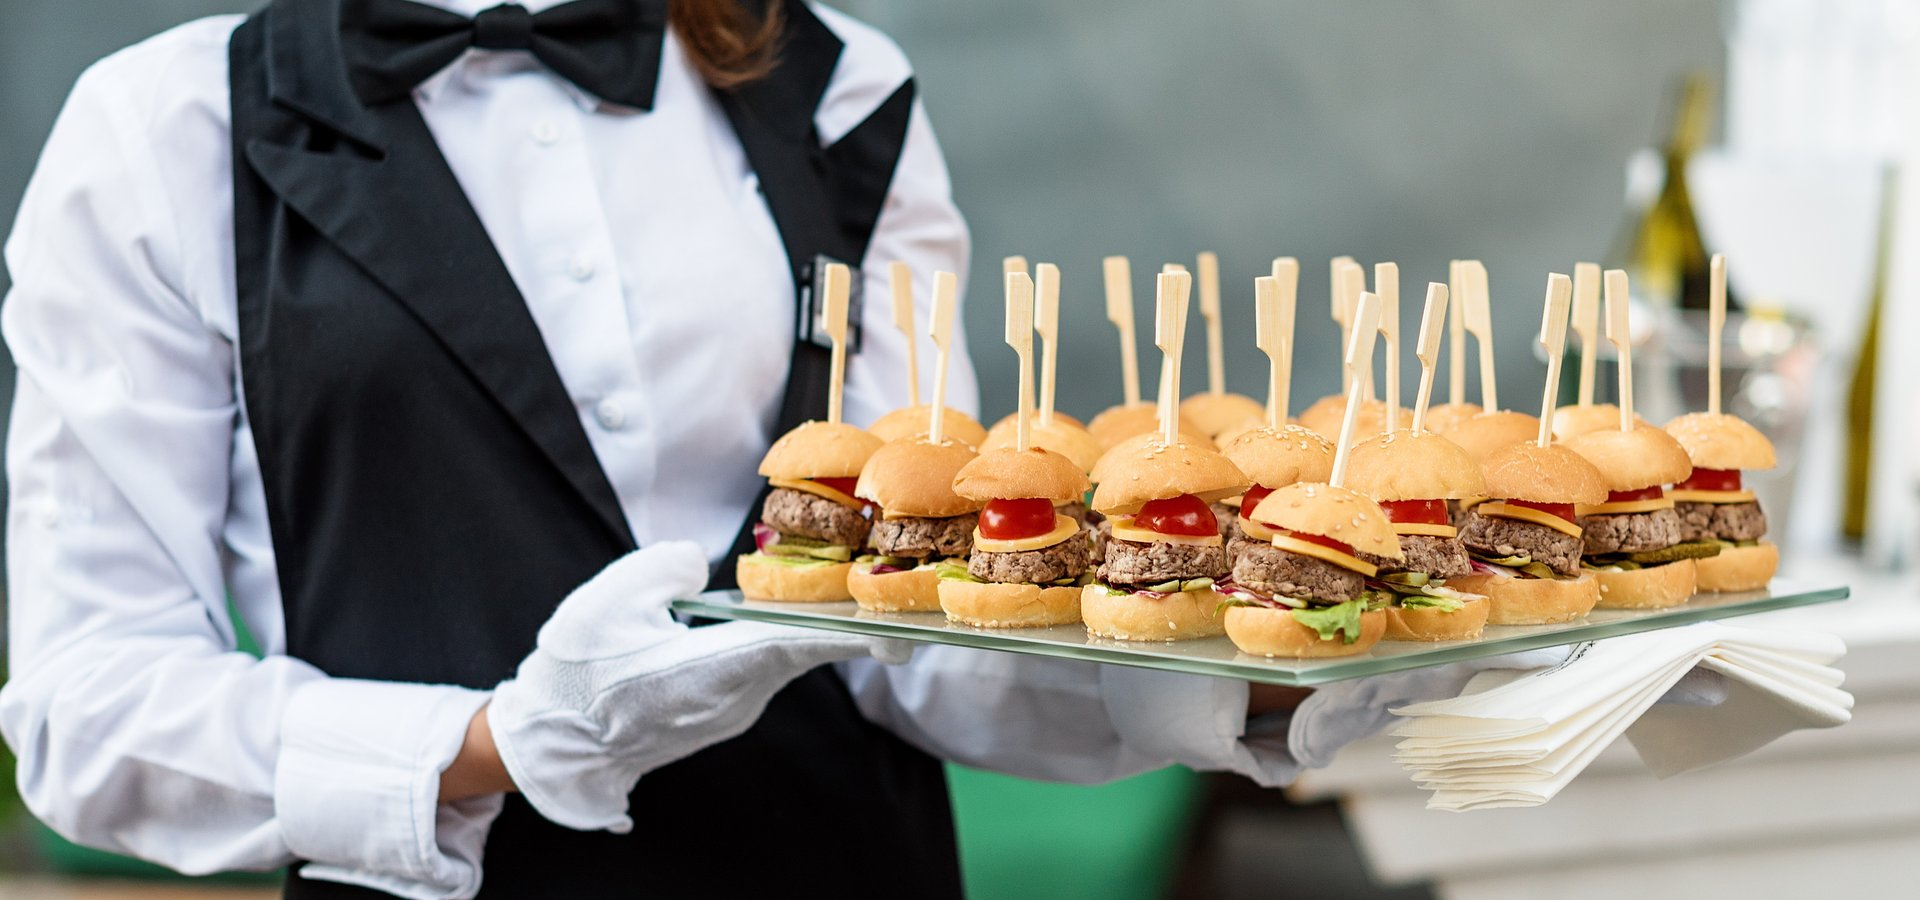 10 Food Ideas for Caterers